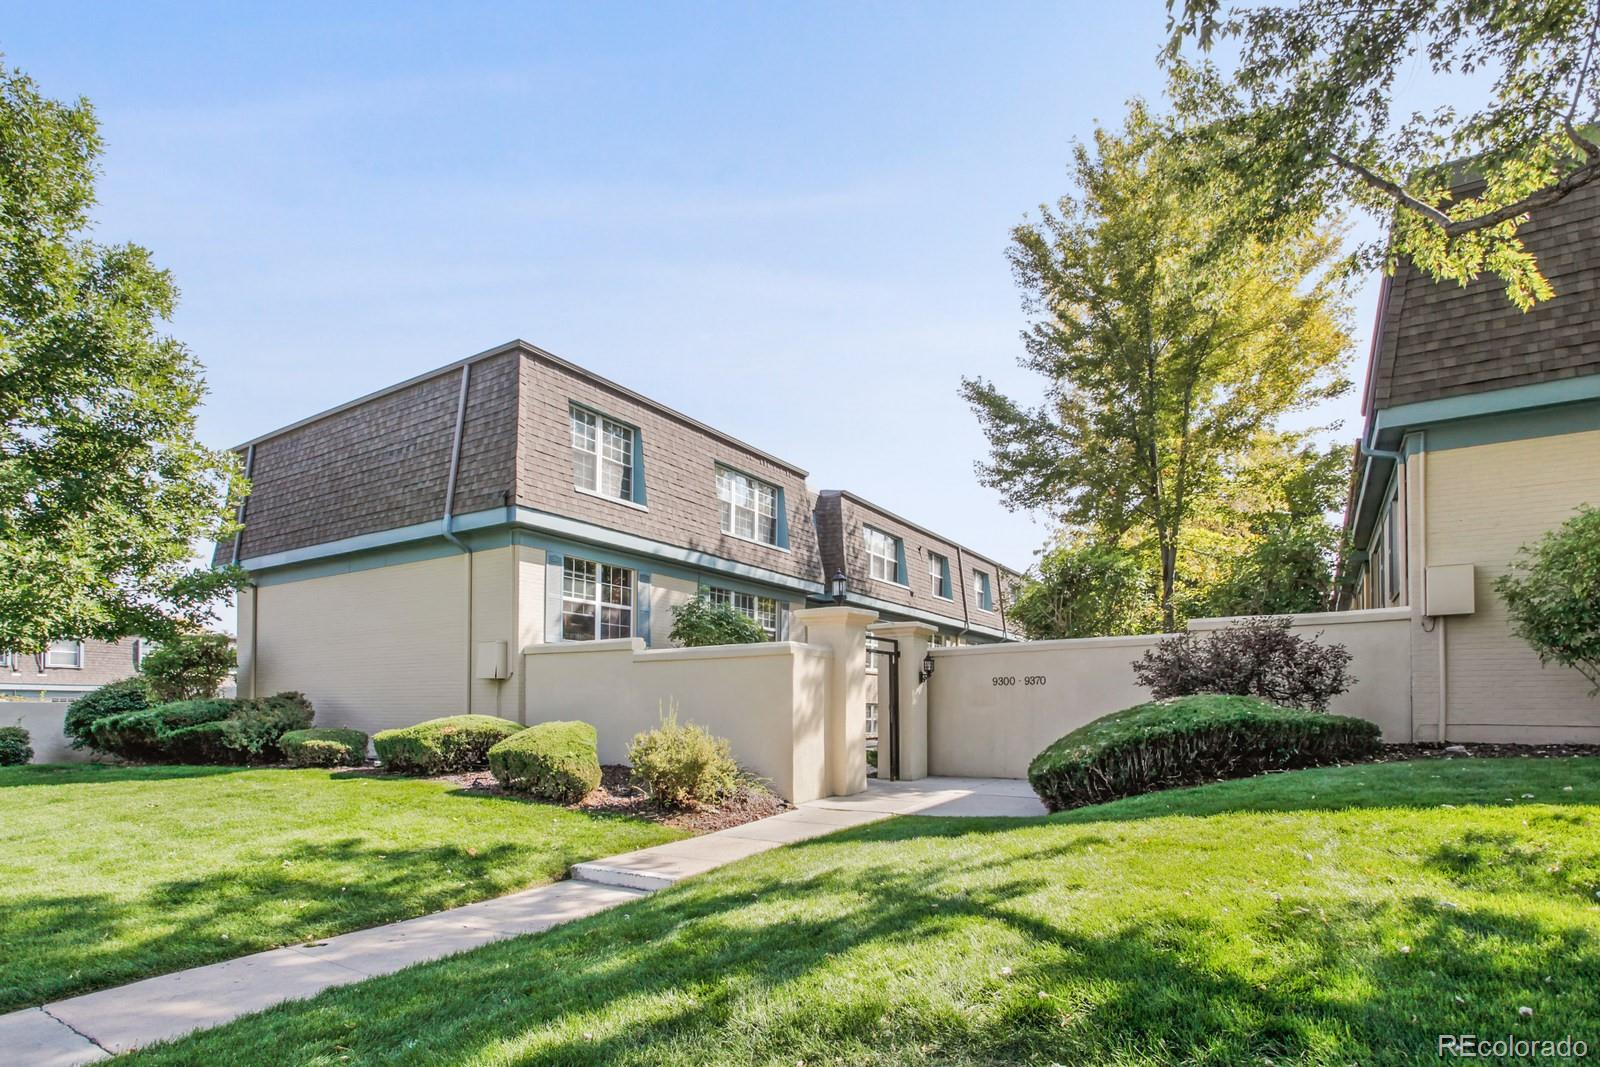 A rare opportunity for a Buyer to acquire this top floor, end-unit condo. One of the few units in Hampden Court with a full-size Washer and Dryer in the unit. This is the larger of the 2-bedroom units in the complex with large bedrooms and remodeled bathrooms. Wood floors in eat-in kitchen and sizeable walk-in storage pantry. Wood burning fireplace in the living room. Newer A/C compressor and water heater. Includes parking space #18 in the gated lot and ample street parking. This is an ideal owner-occupied property or a great investment property due to its superior location situated away from street noise. Close to I-25, I-225, RTD and Dayton light rail station makes the DTC and Denver metro easily accessible. Located near restaurants, Whole Foods, Target, King Soopers, Cherry Creek State Park, and biking and walking trails. HOA includes insurance, trash, sewer, water, snow removal, clubhouse/pool/hot tub and up-keep of common areas. All appliances included. Buyer to verify measurements and HOA information.